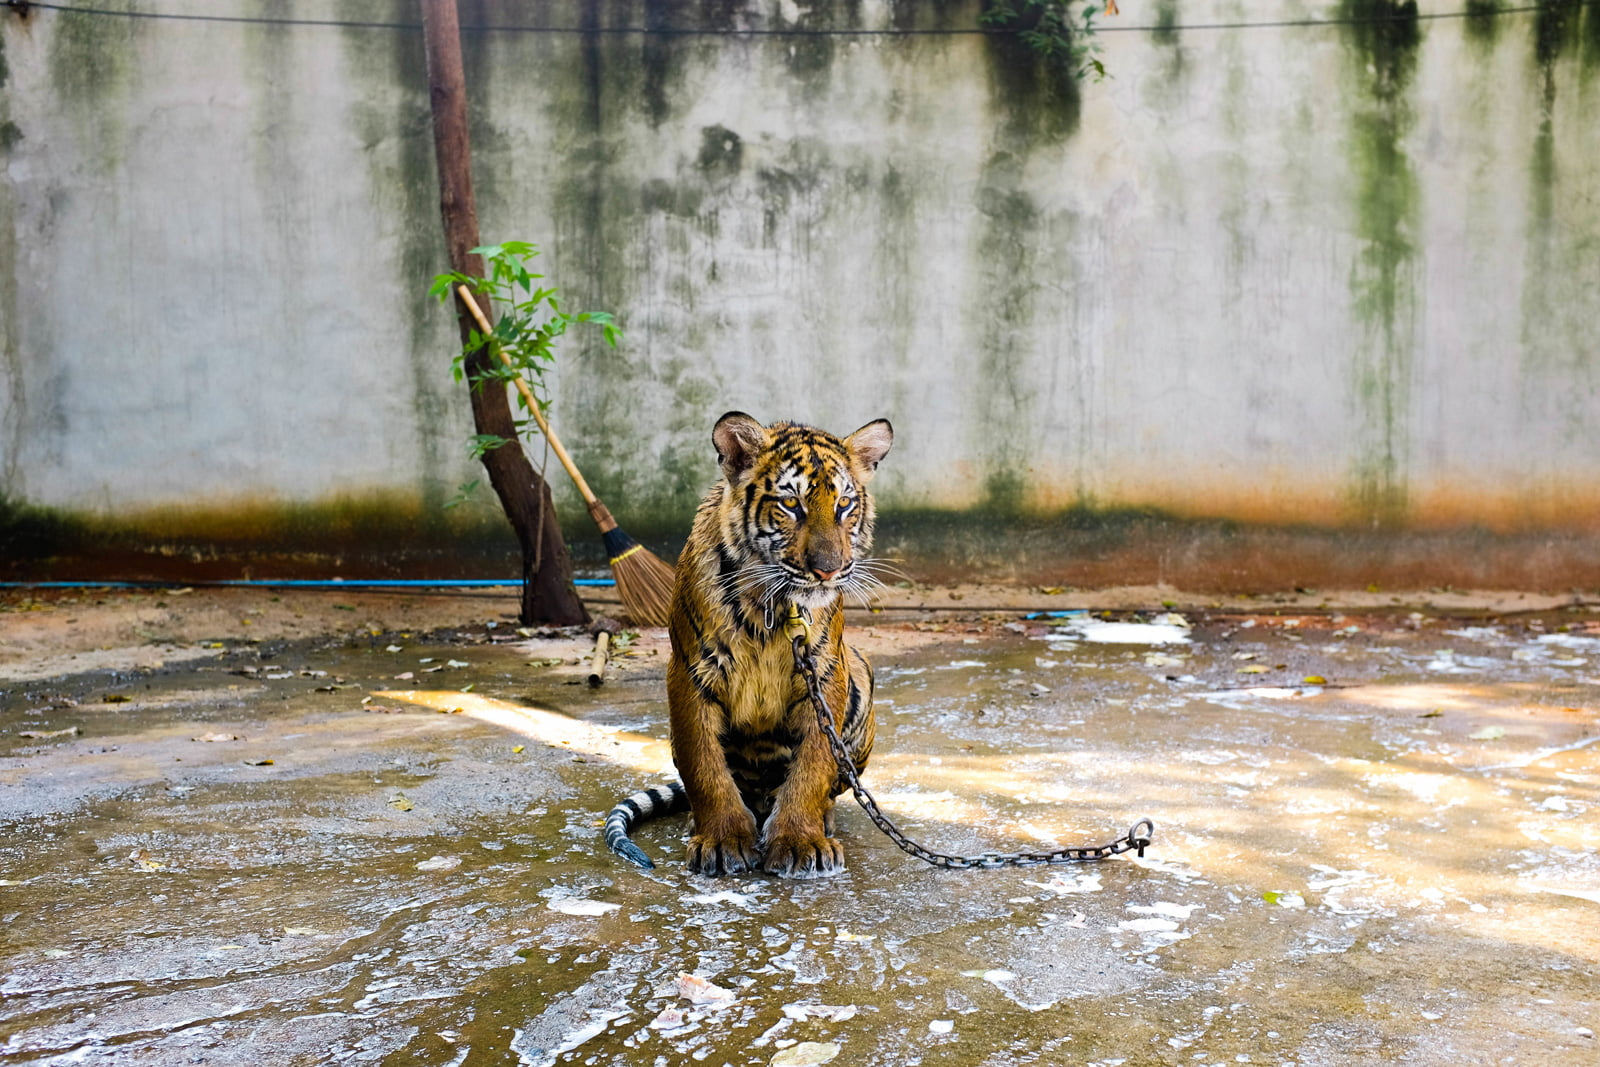 Tiger chained in a zoo enclosure